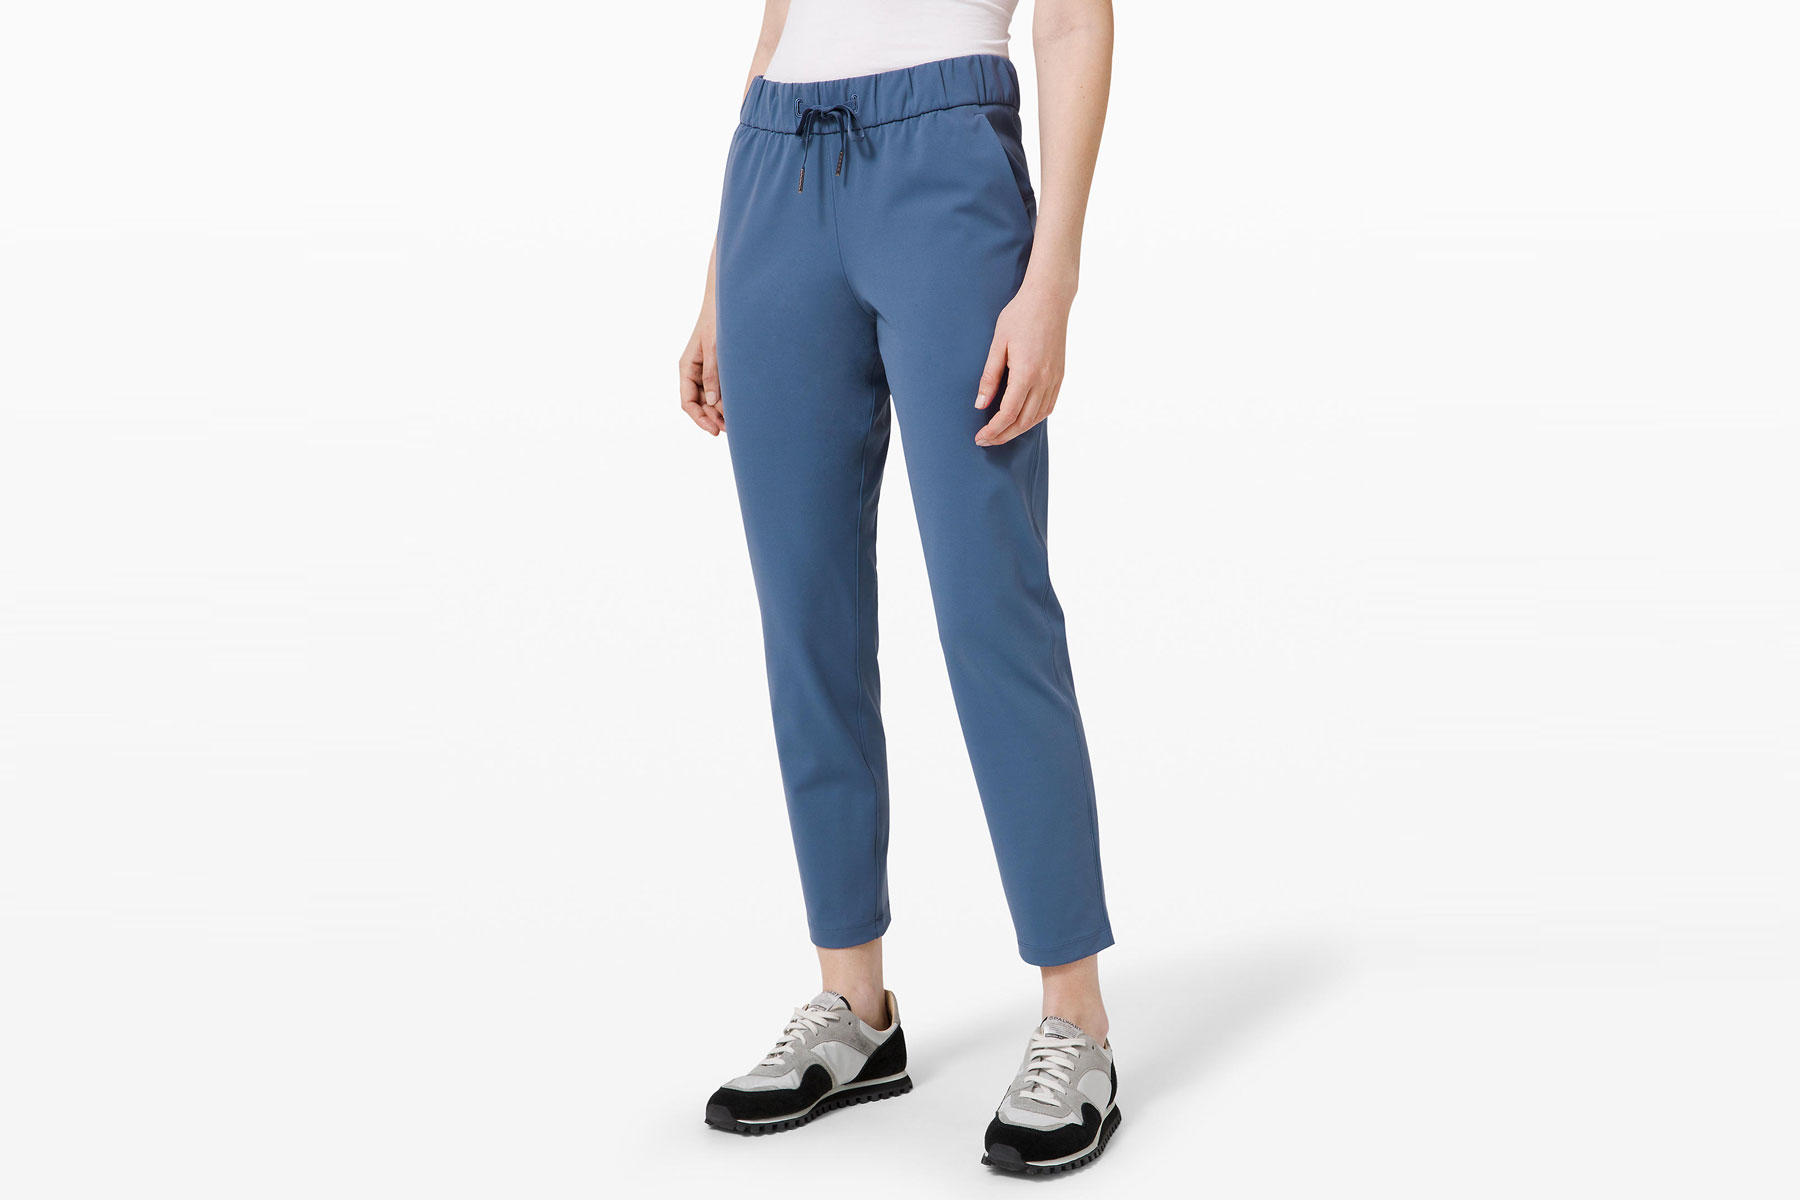 Women's blue track pants